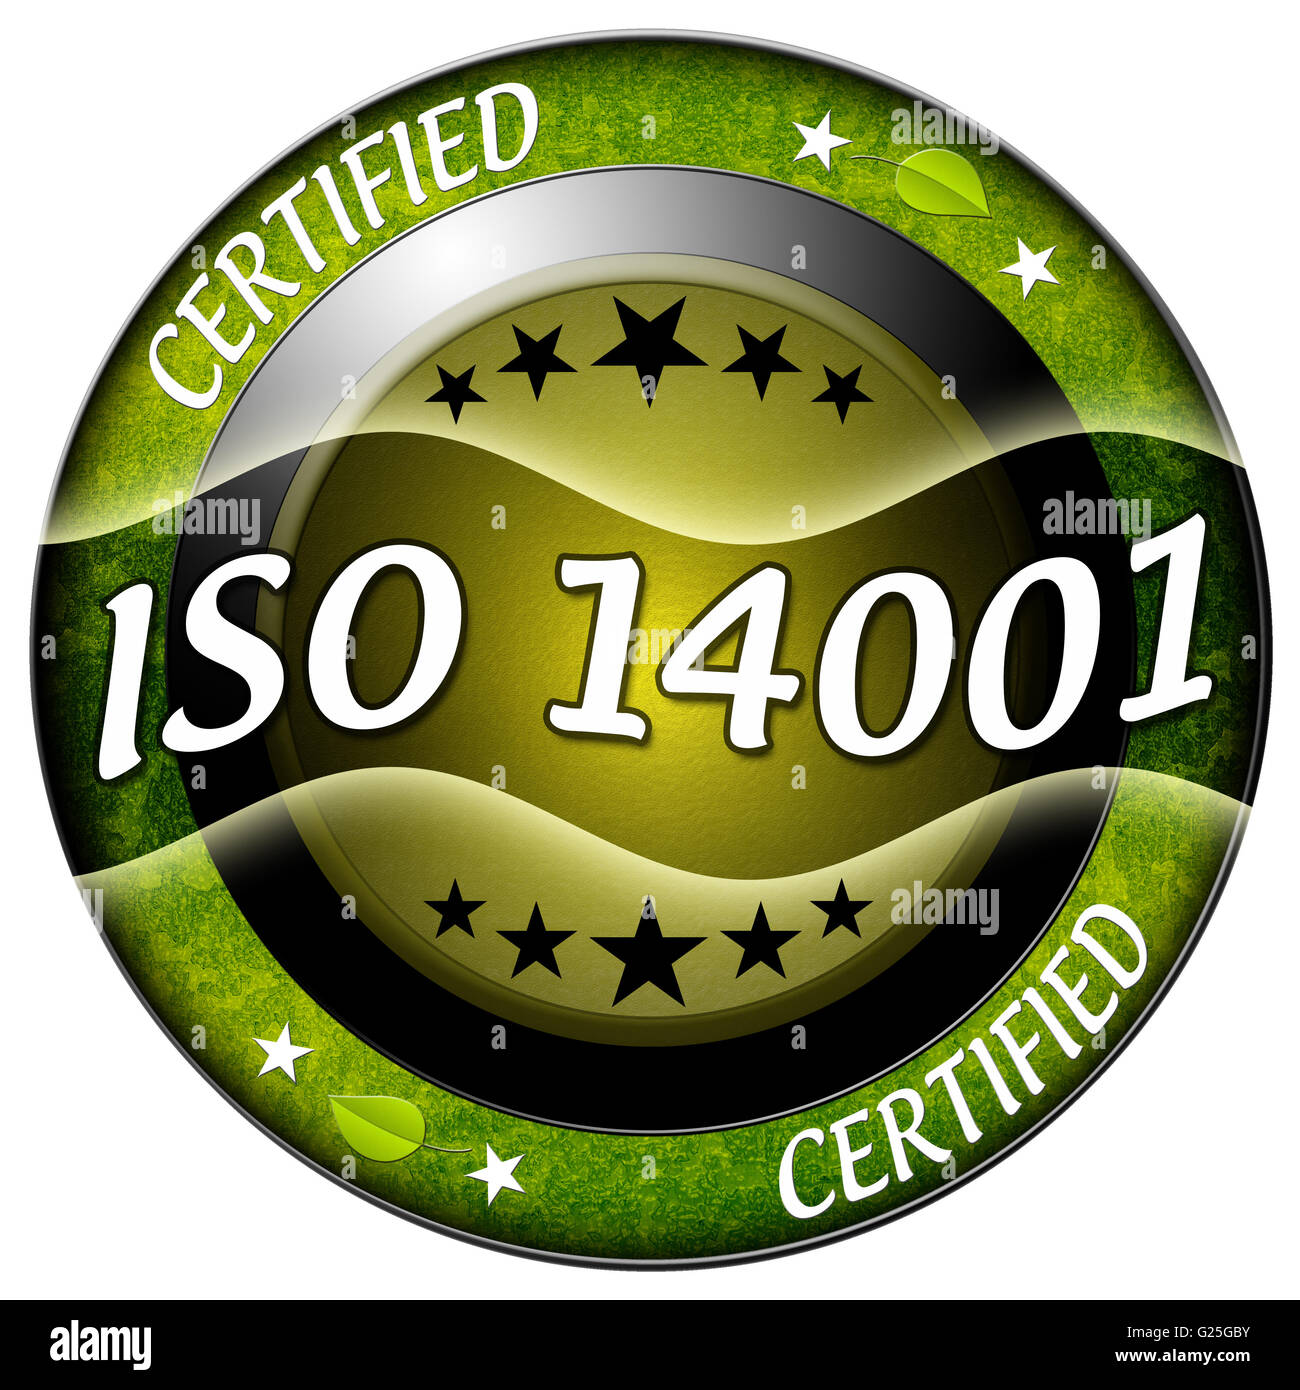 Iso 14001 round green icon isolated - Stock Image